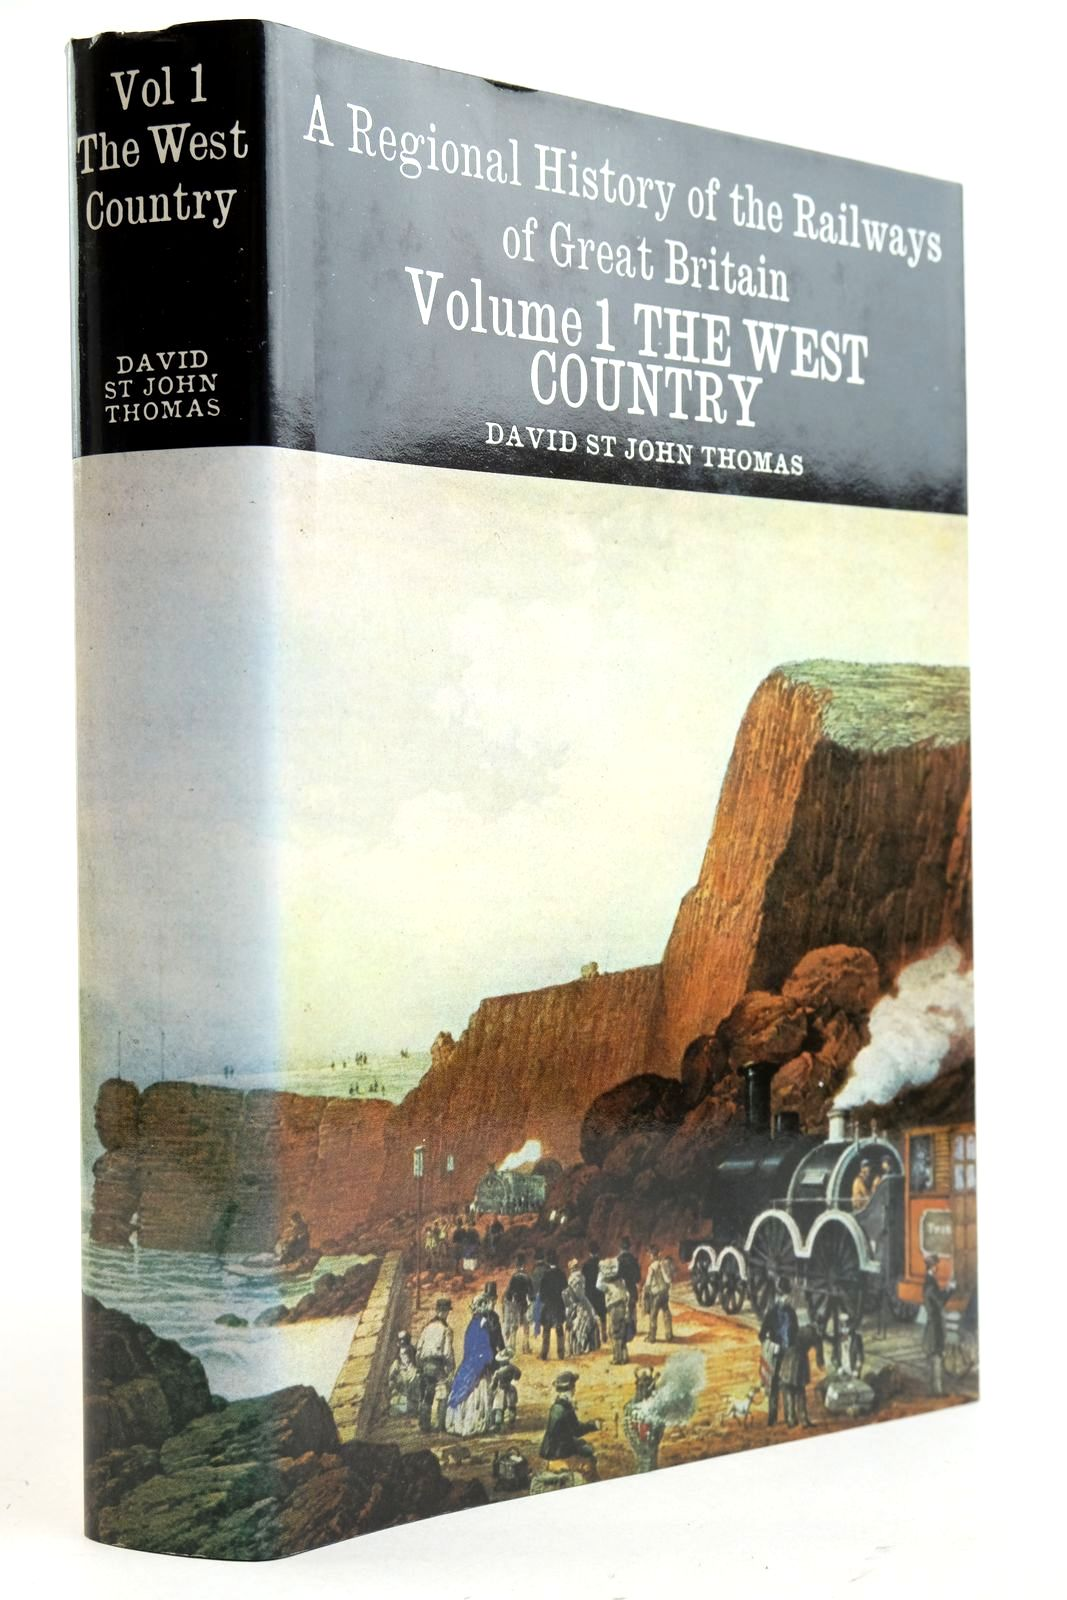 Photo of A REGIONAL HISTORY OF THE RAILWAYS OF GREAT BRITAIN VOLUME I THE WEST COUNTRY written by Thomas, David St John published by David & Charles (STOCK CODE: 2133039)  for sale by Stella & Rose's Books